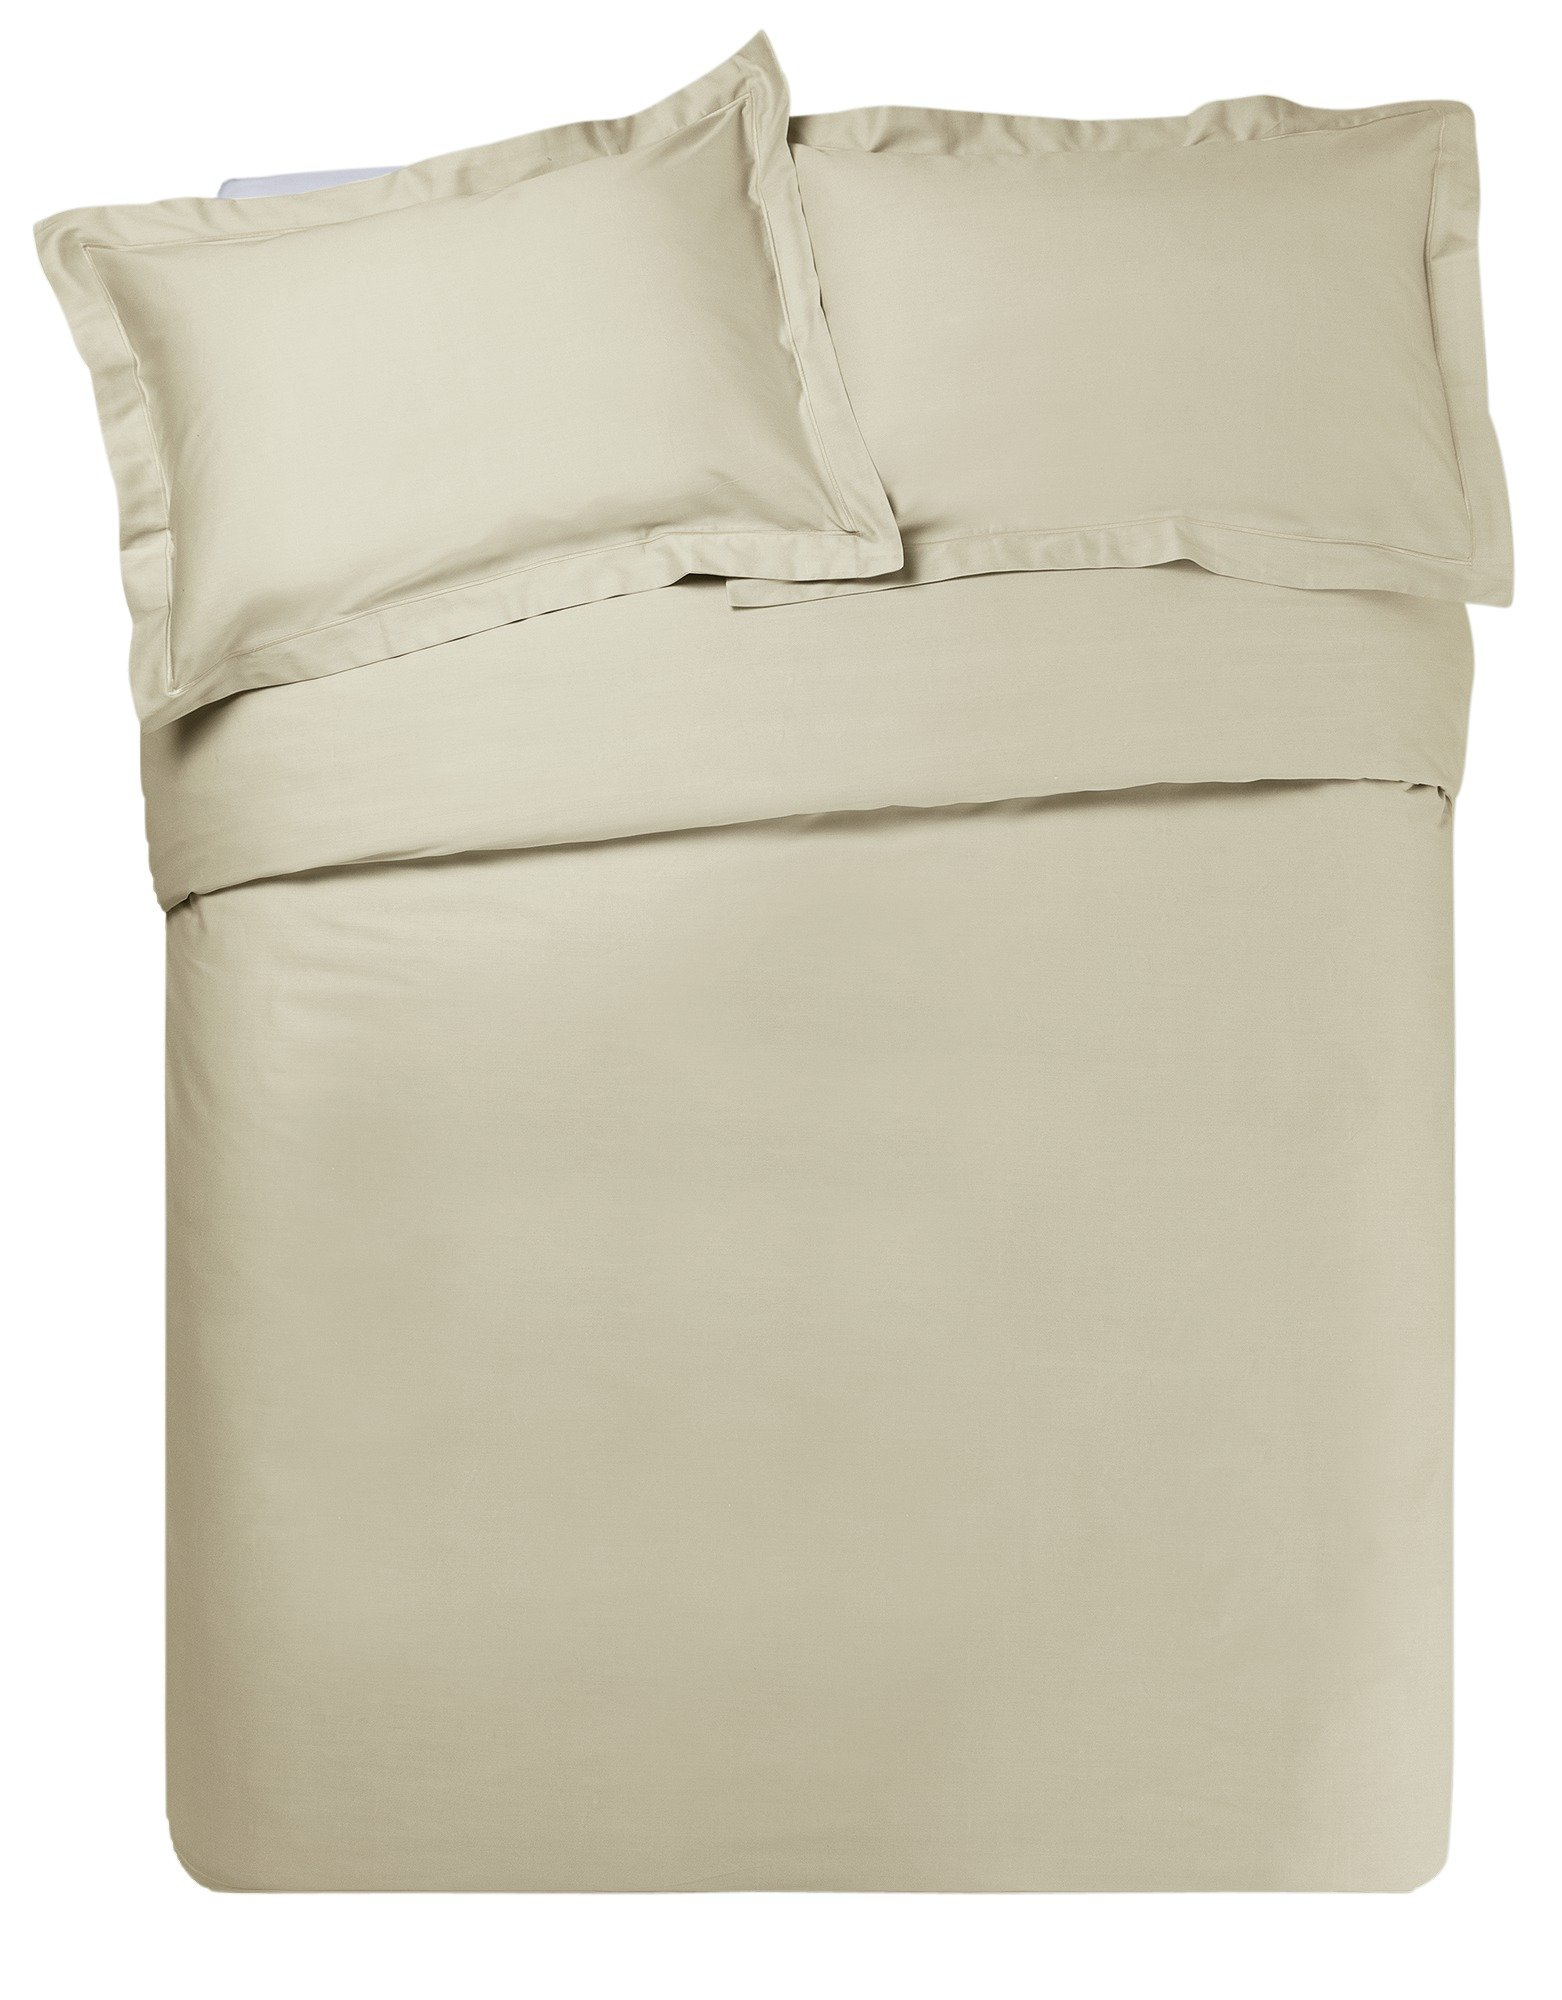 heart-of-house-ivory-400-thread-count-bedding-set-superking